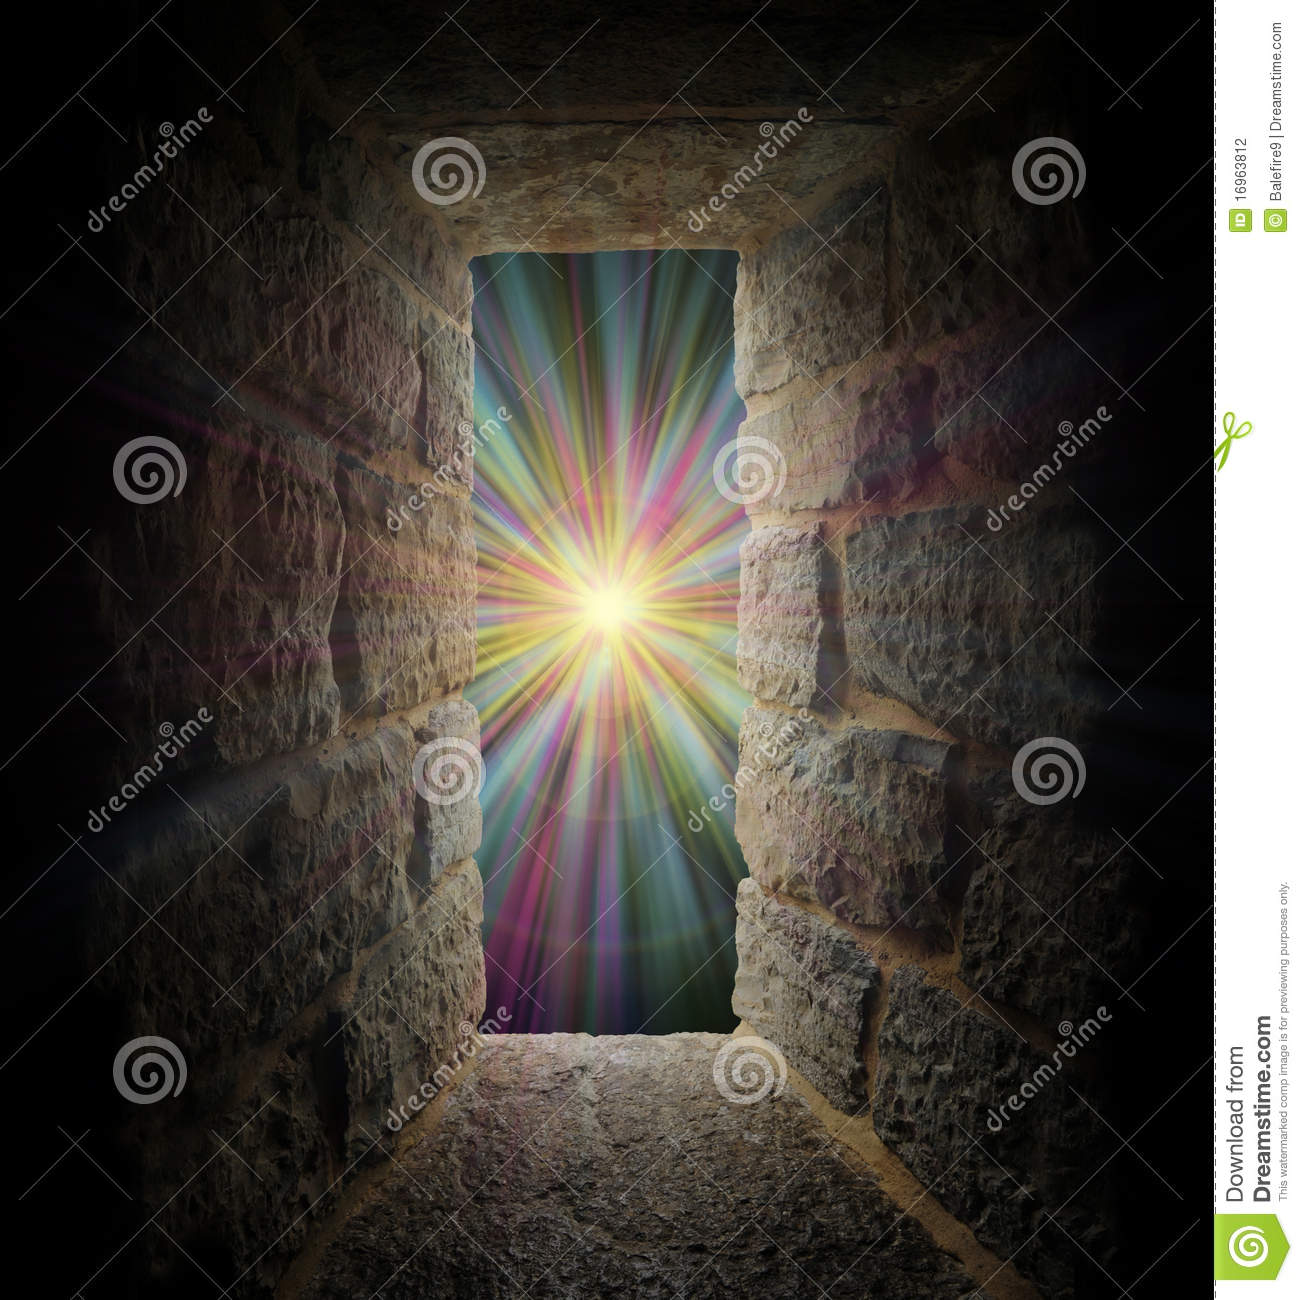 Fall Forest Wallpaper Mystical Stone Window Or Portal To A Pastel Vortex Stock